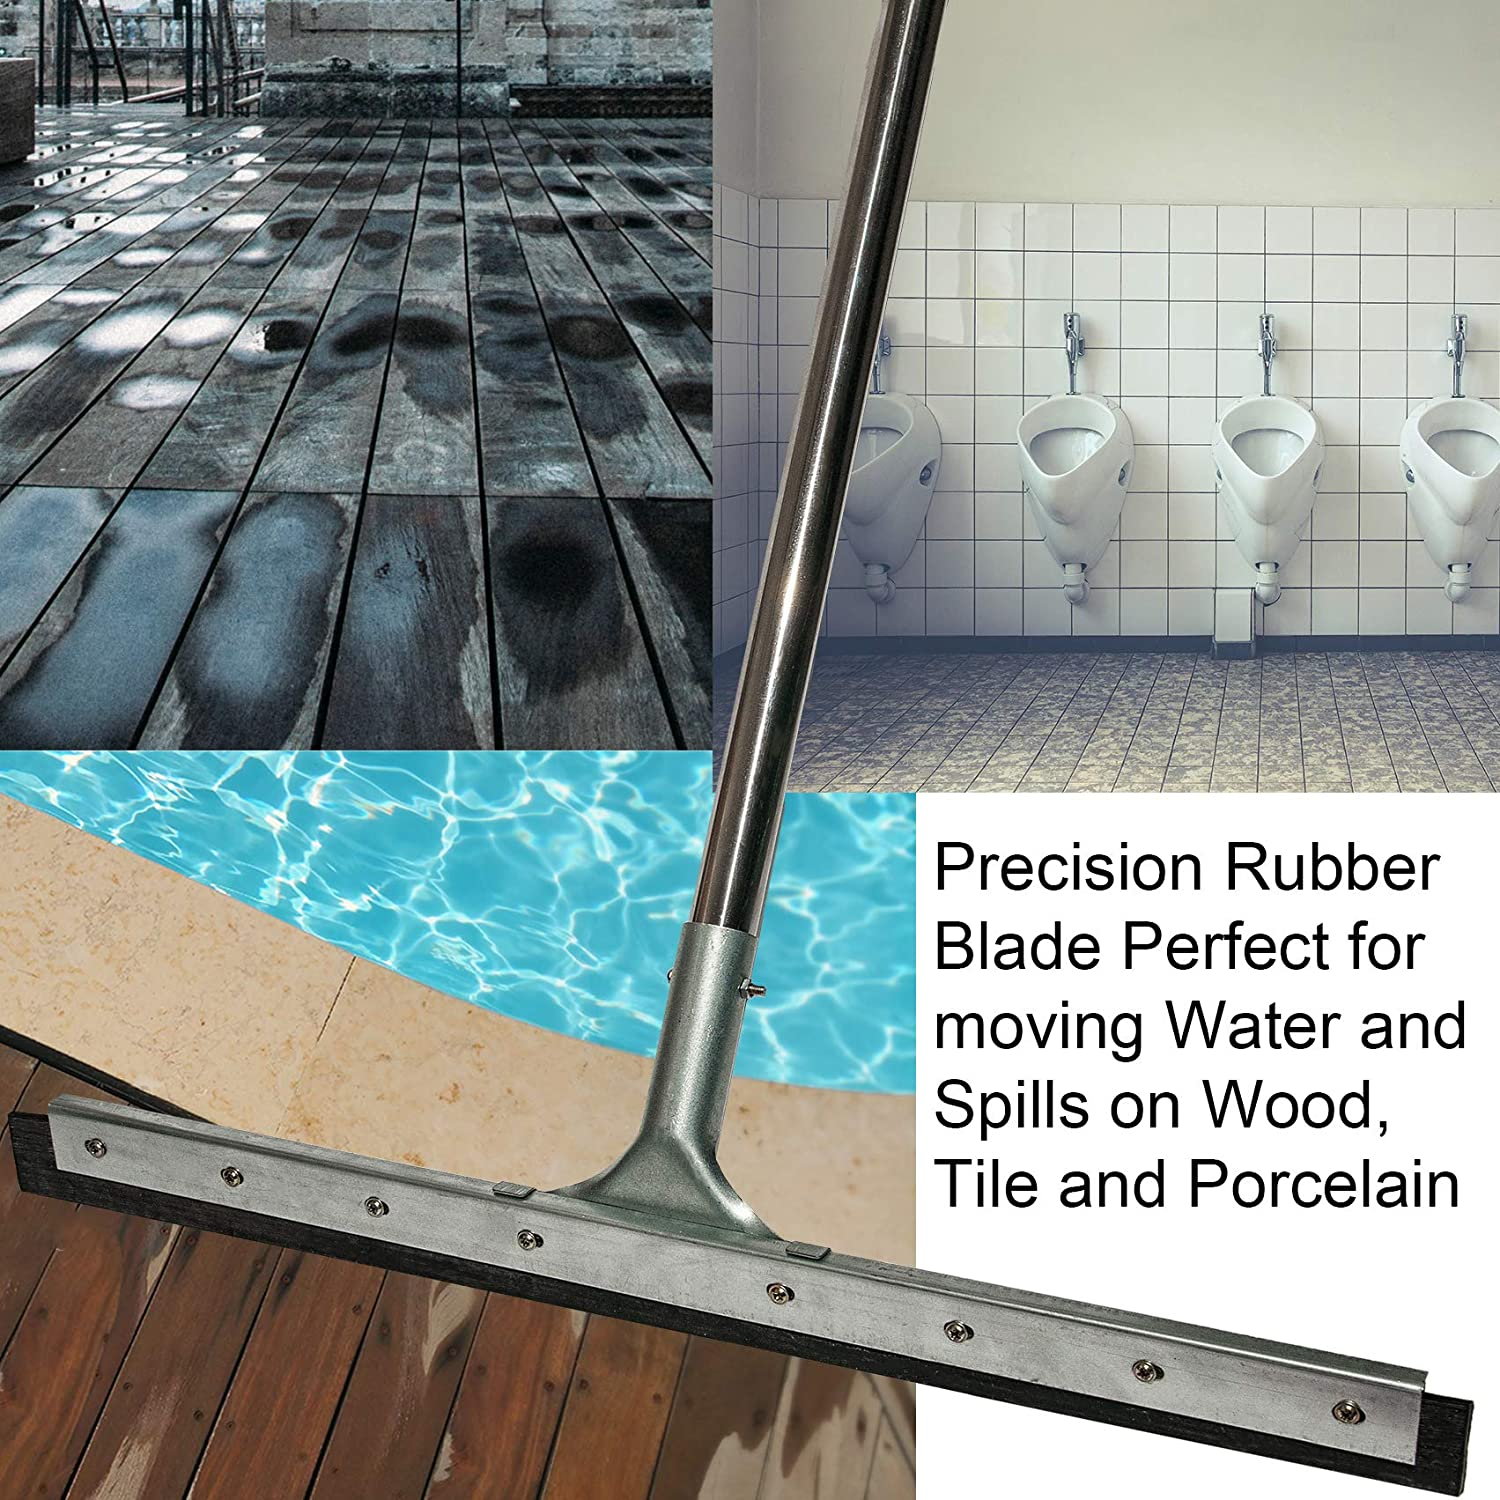 Garage Warehouse Perfect for Washing and Drying Tile Floor Squeegee Wood Marble Concrete 23.5 Rubber Heavy Duty